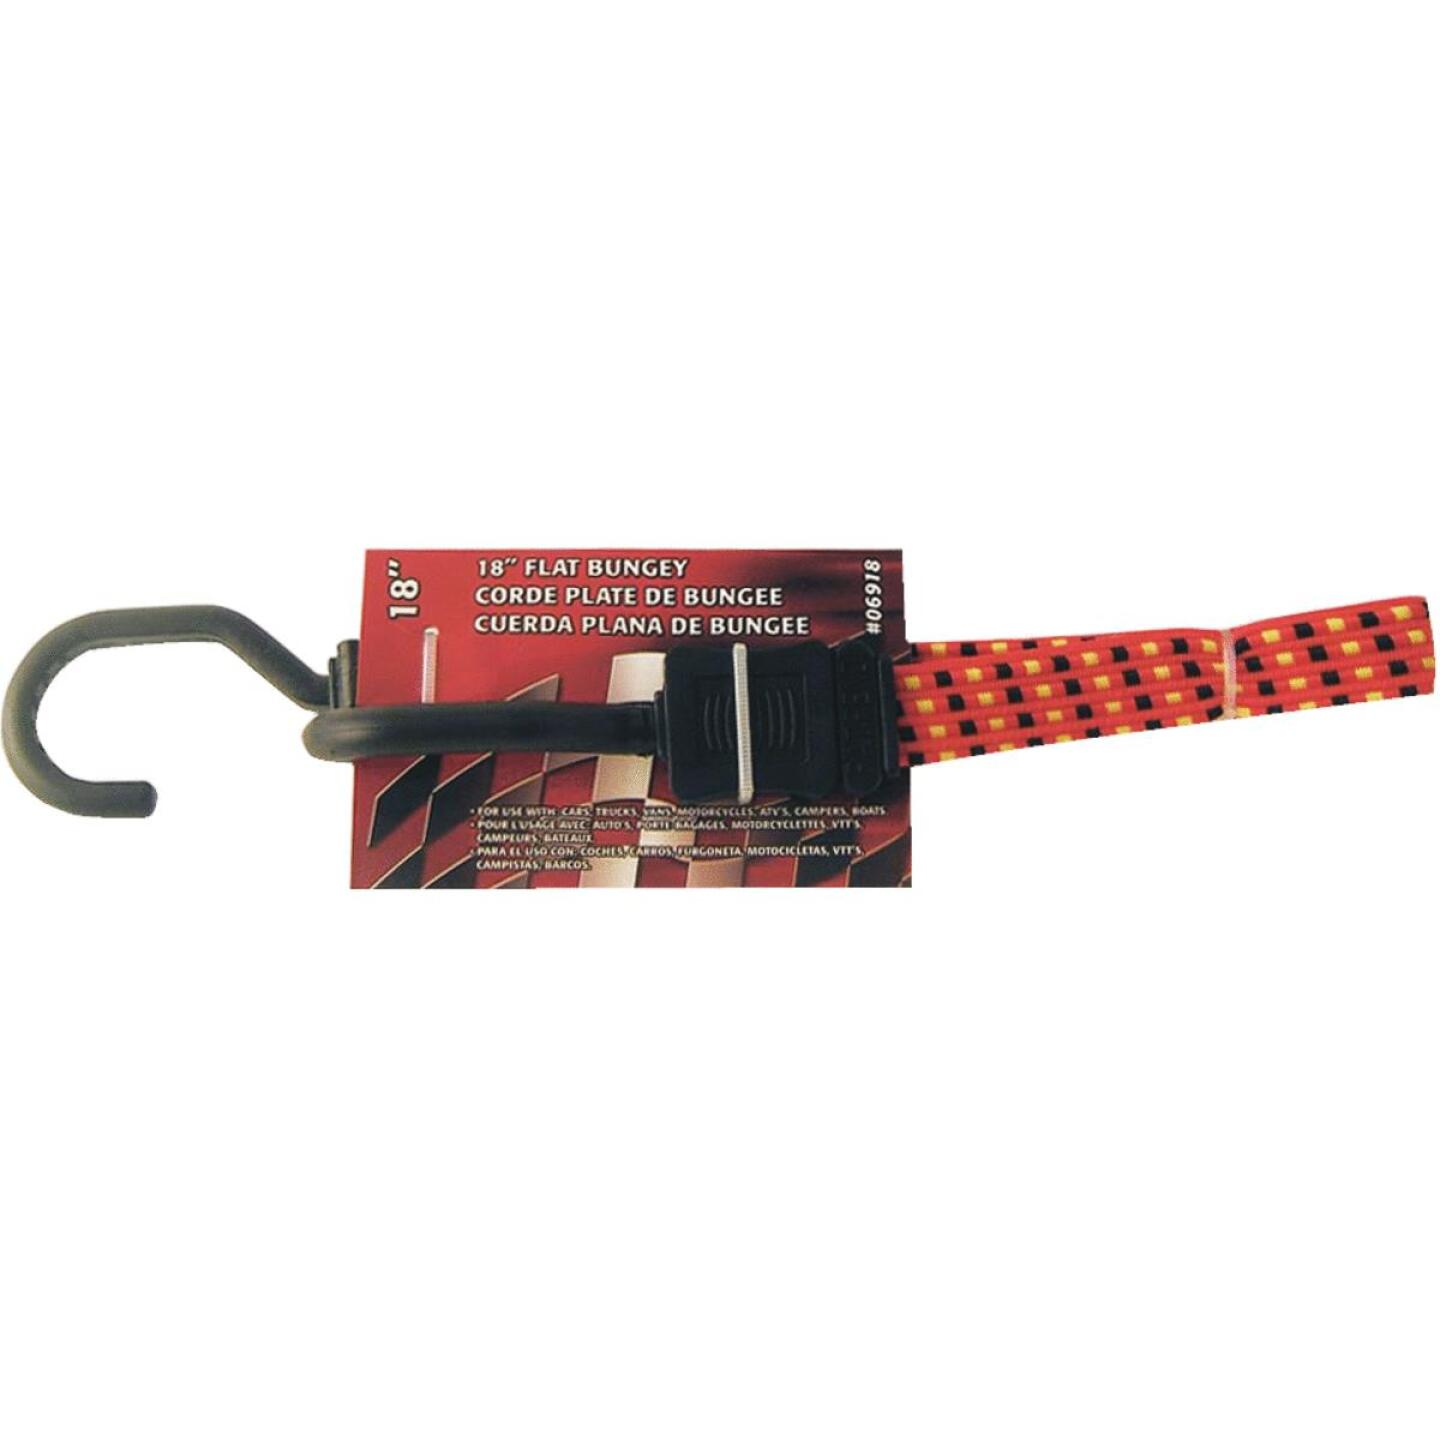 Erickson 3/4 In. x 18 In. Flat Bungee Cord, Red/Black Image 1